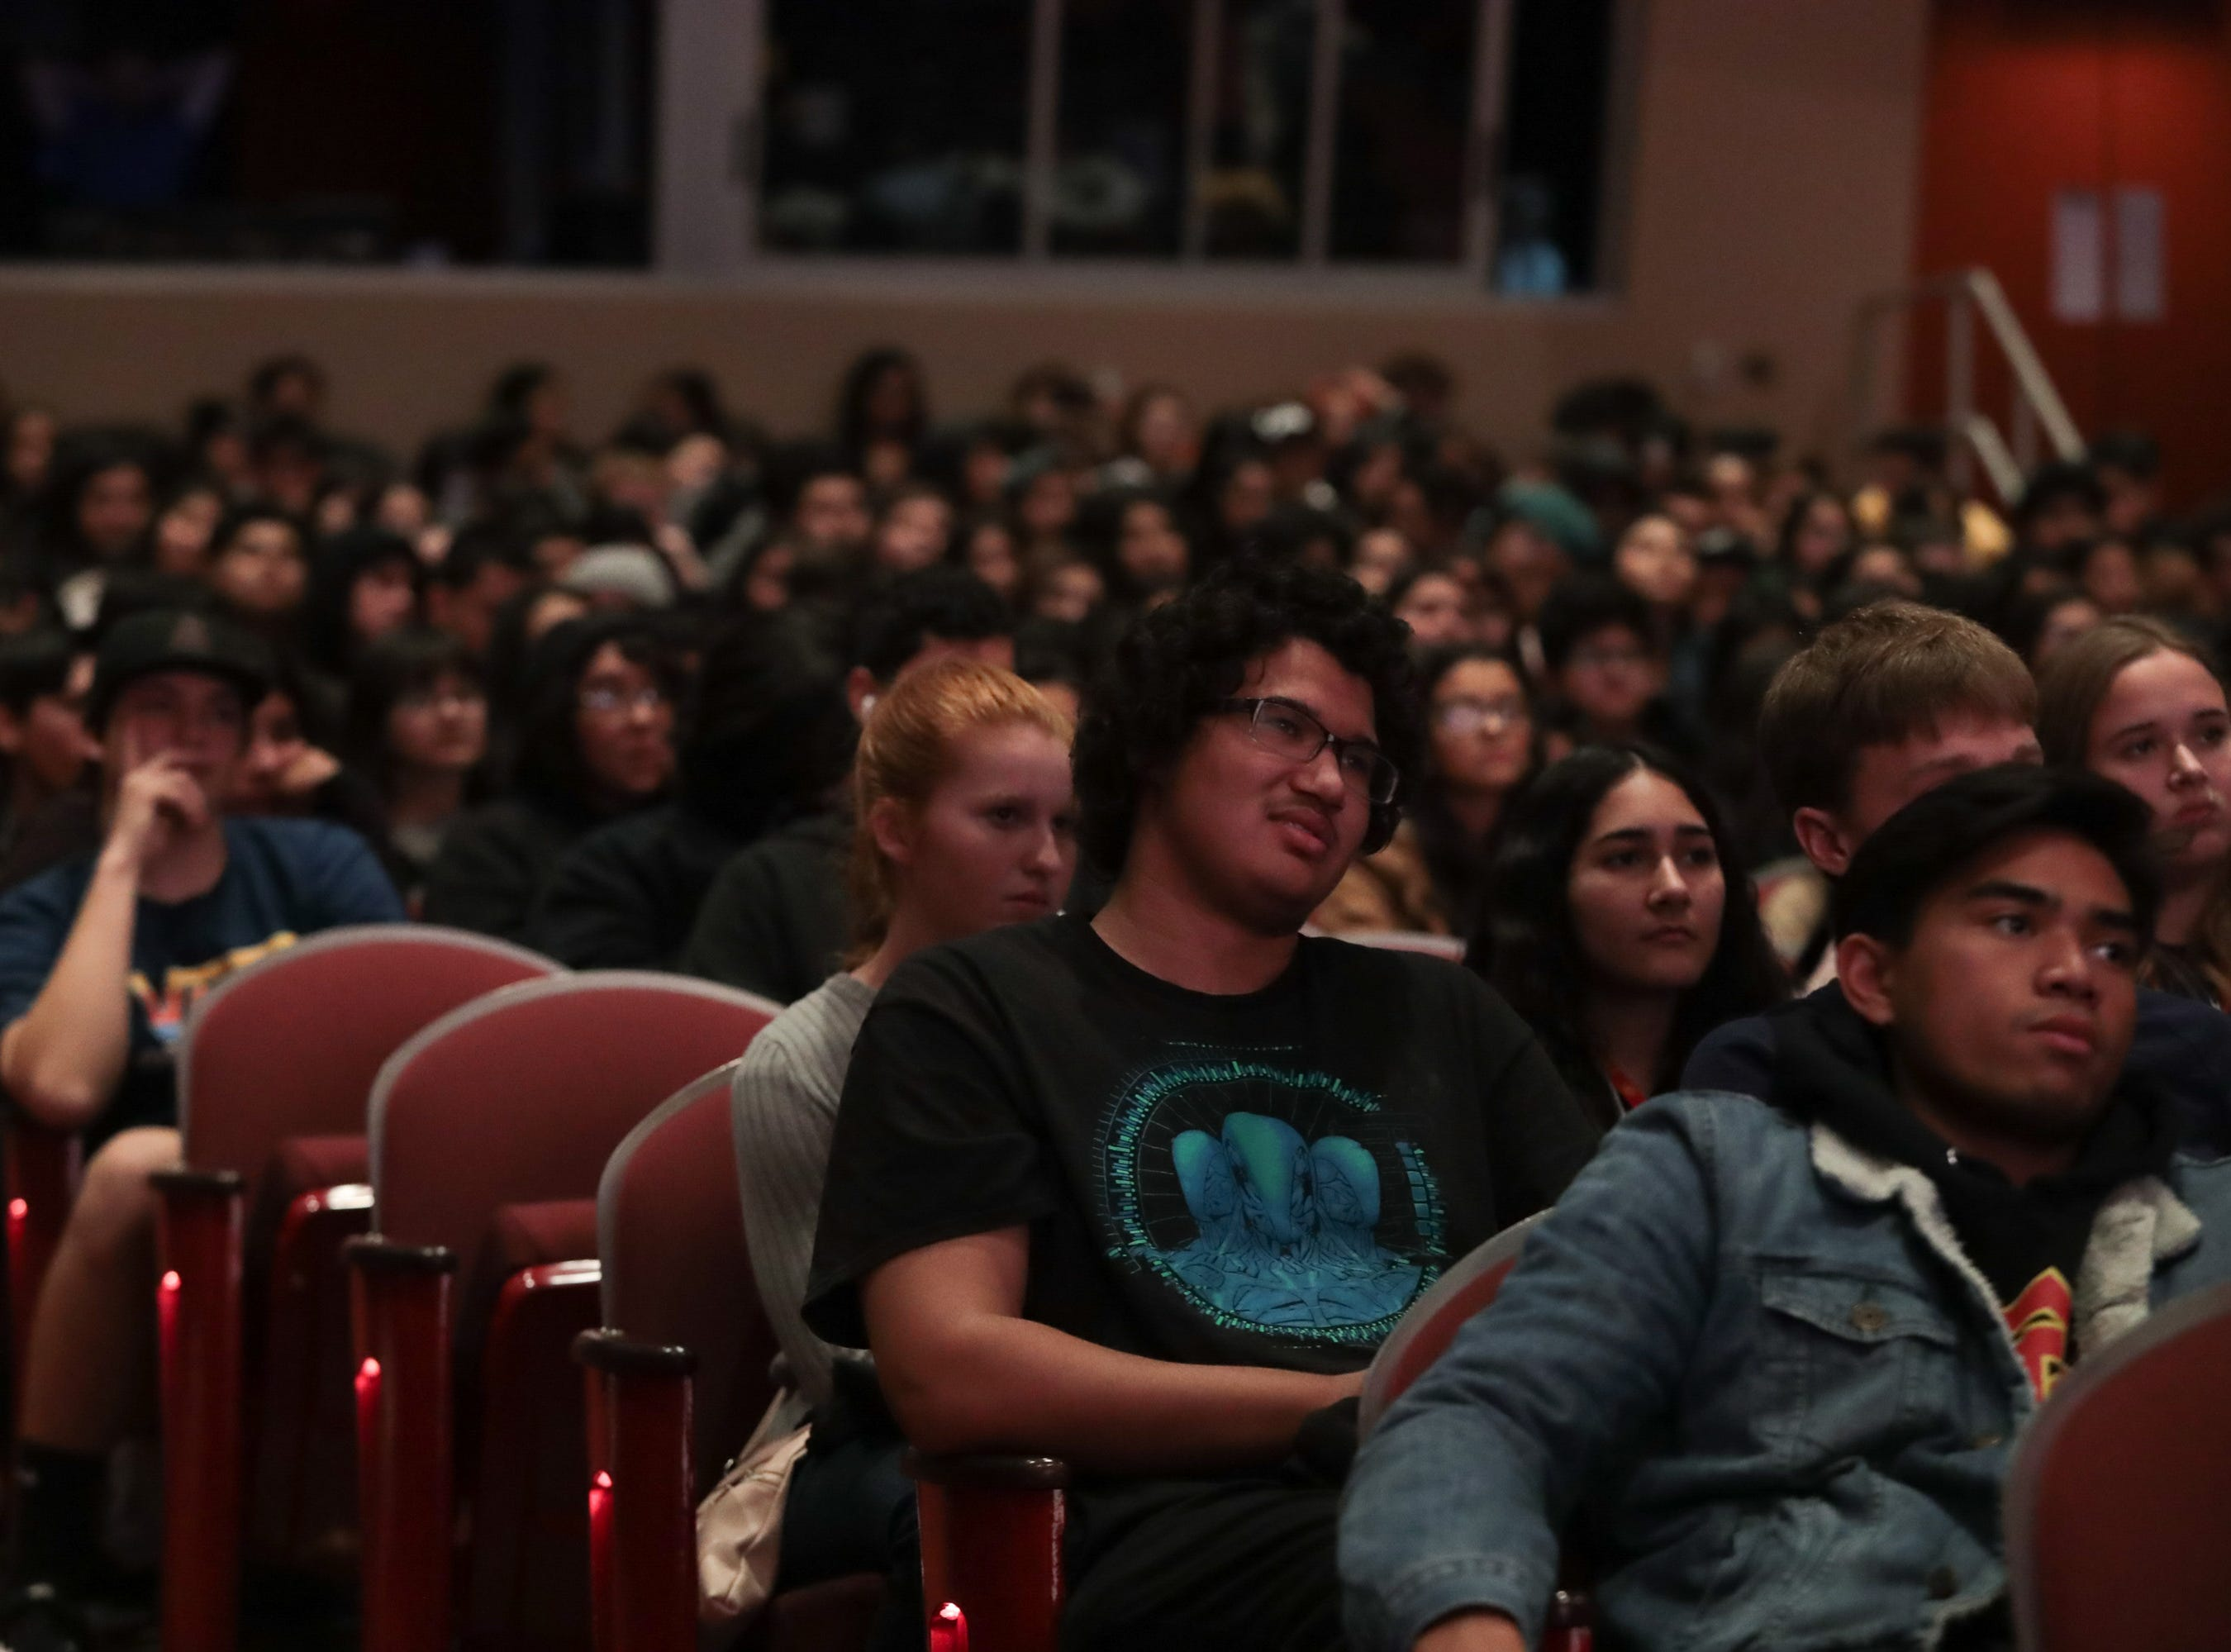 Local high school students attend a Palm Springs International Film Festival screening at Palm Springs High School, Palm Springs, Calif., January 14, 2018.